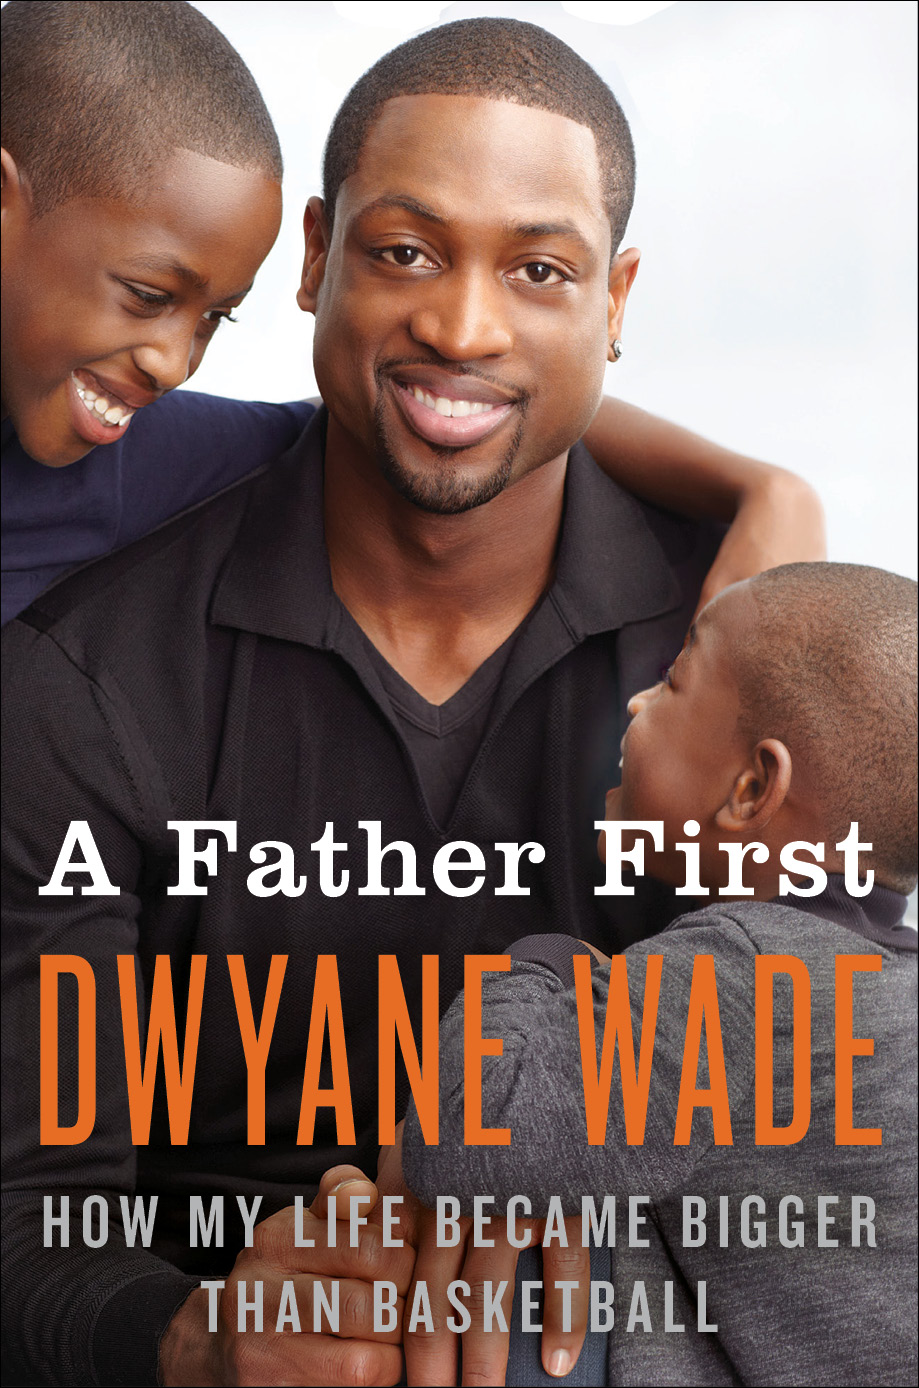 Dwyane Wade's Ex Reveals Details About Custody Battle on 'Dr